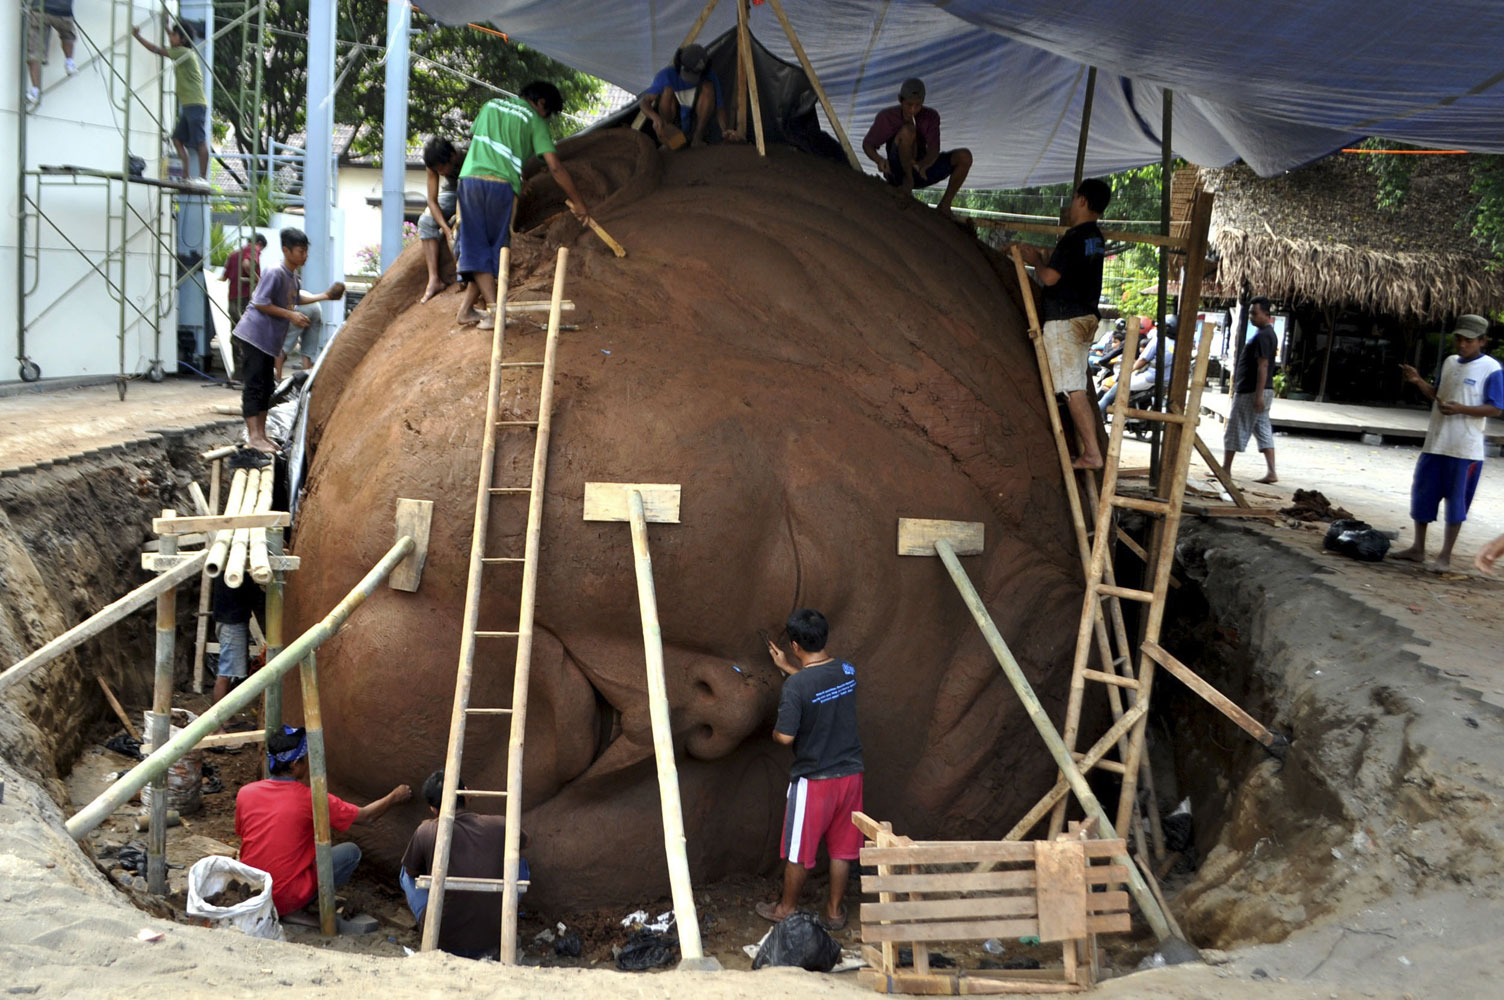 July 7, 2011. Indonesian artists make a sculpture of a child from clay in preparation for Yogyakarta art festival in Yogyakarta, Central Java, Indonesia.